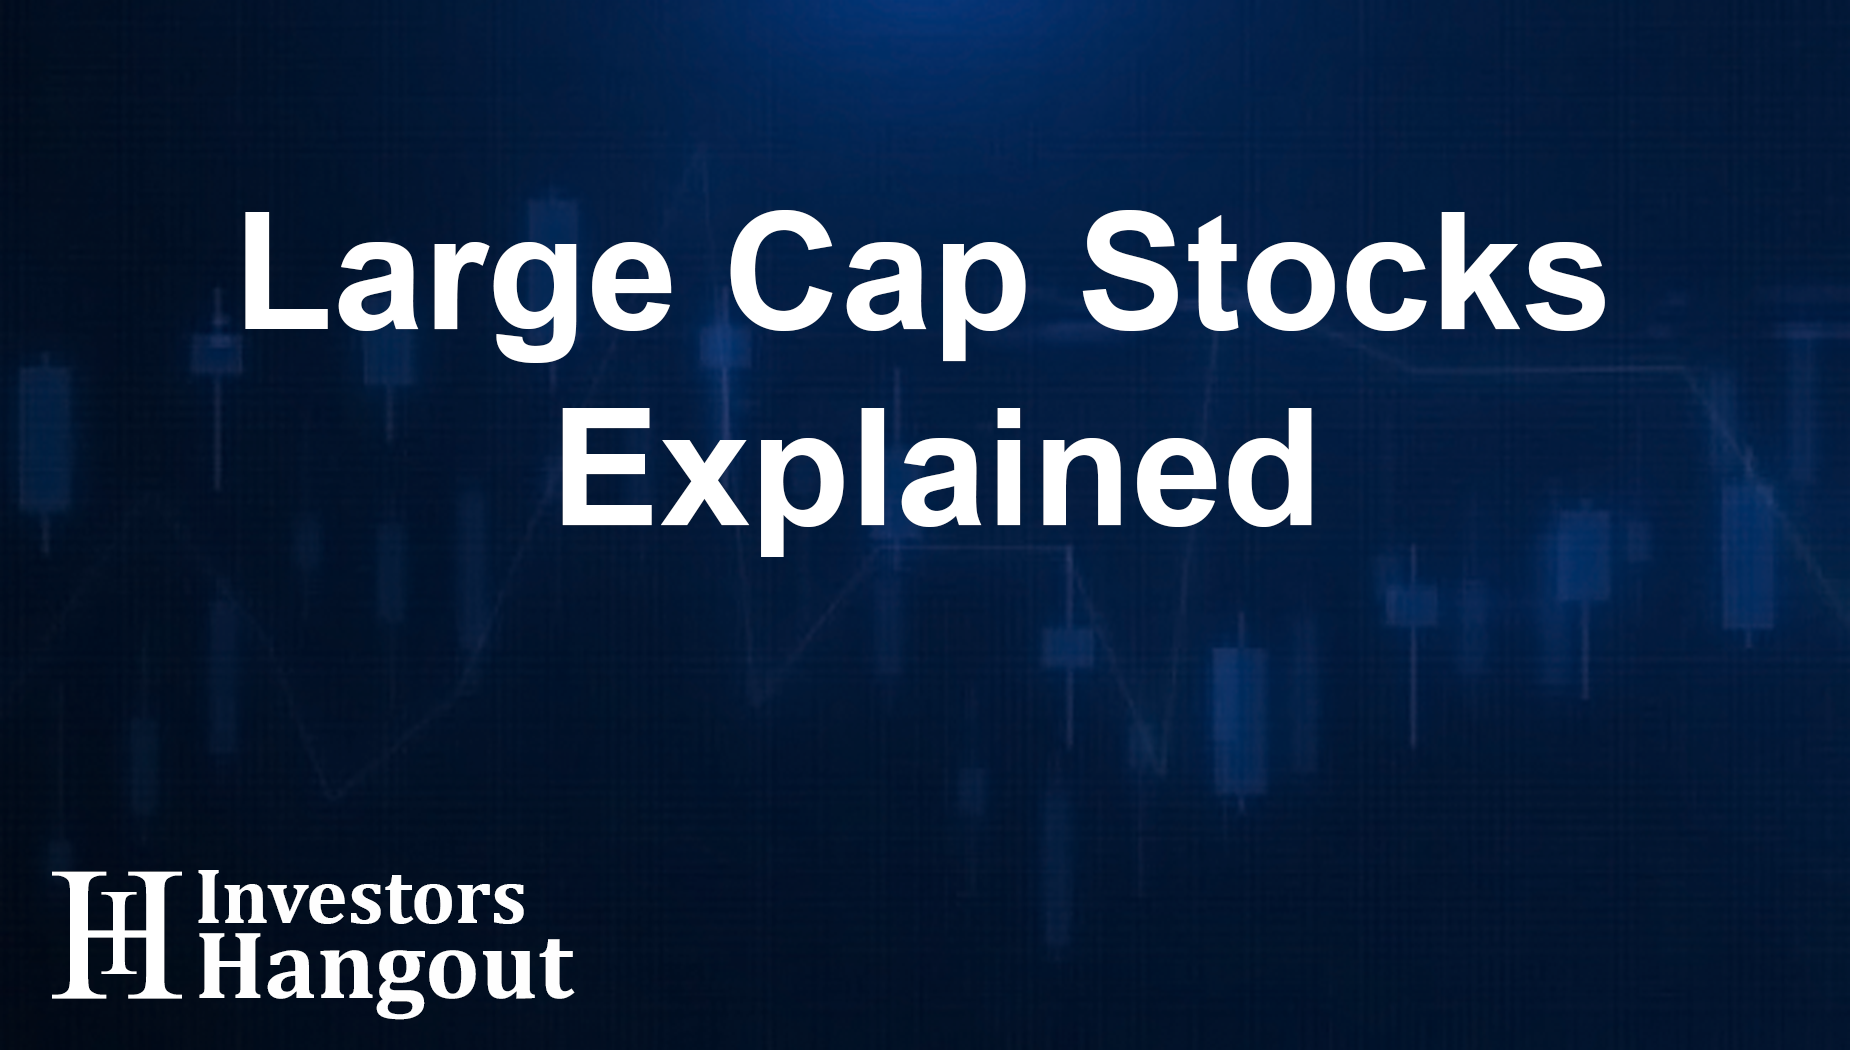 Large Cap Stocks Explained